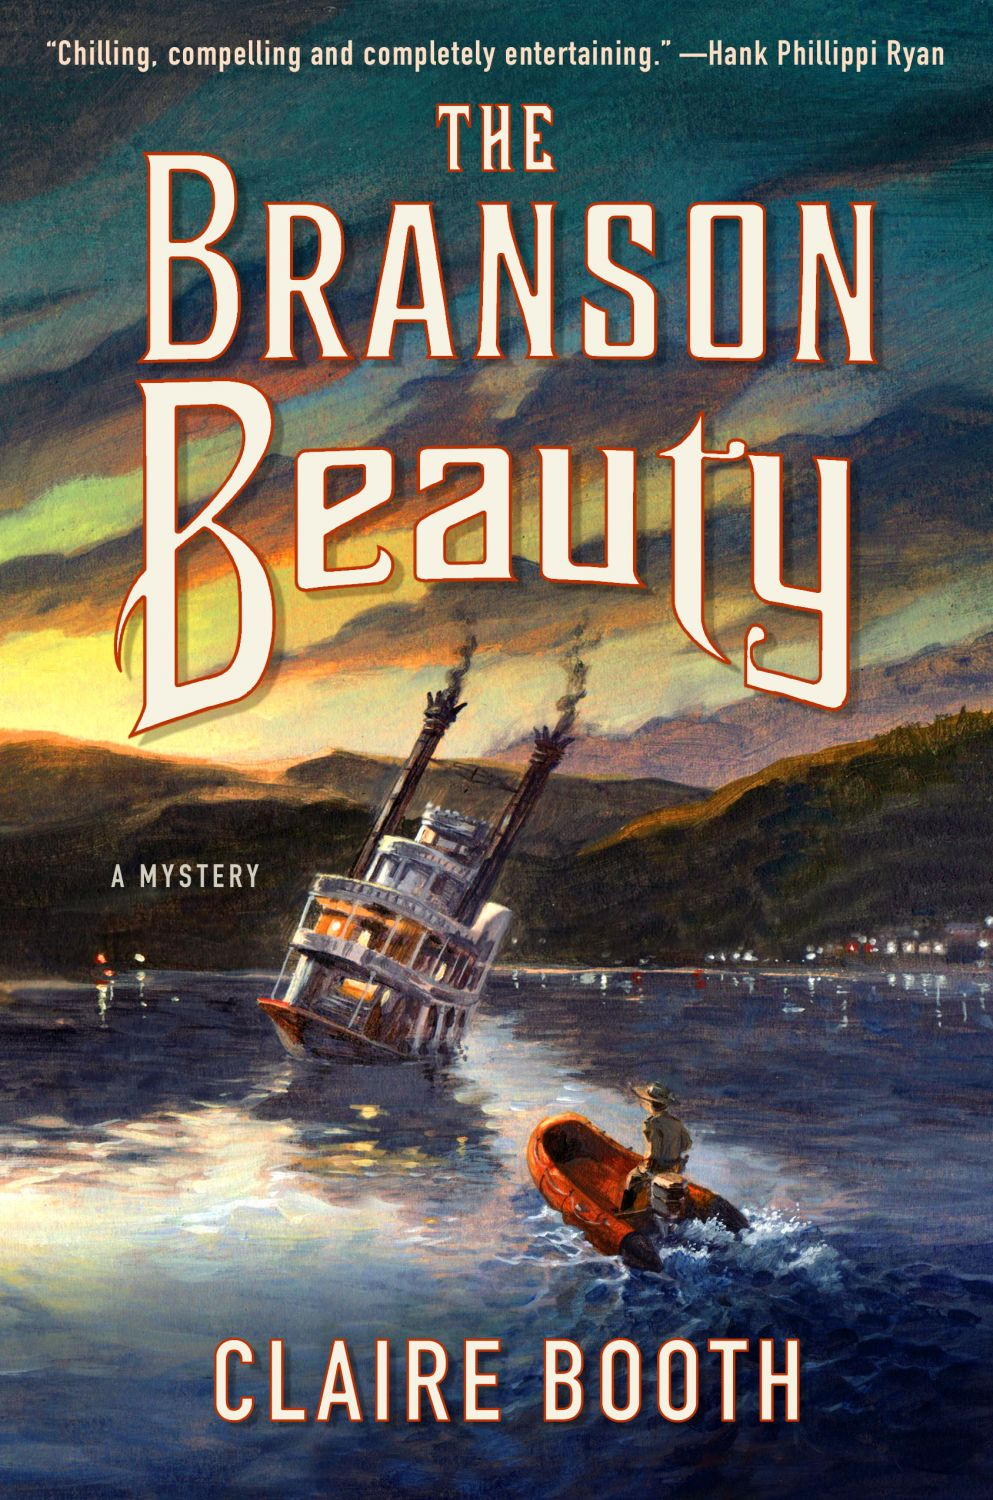 About The Branson Beauty